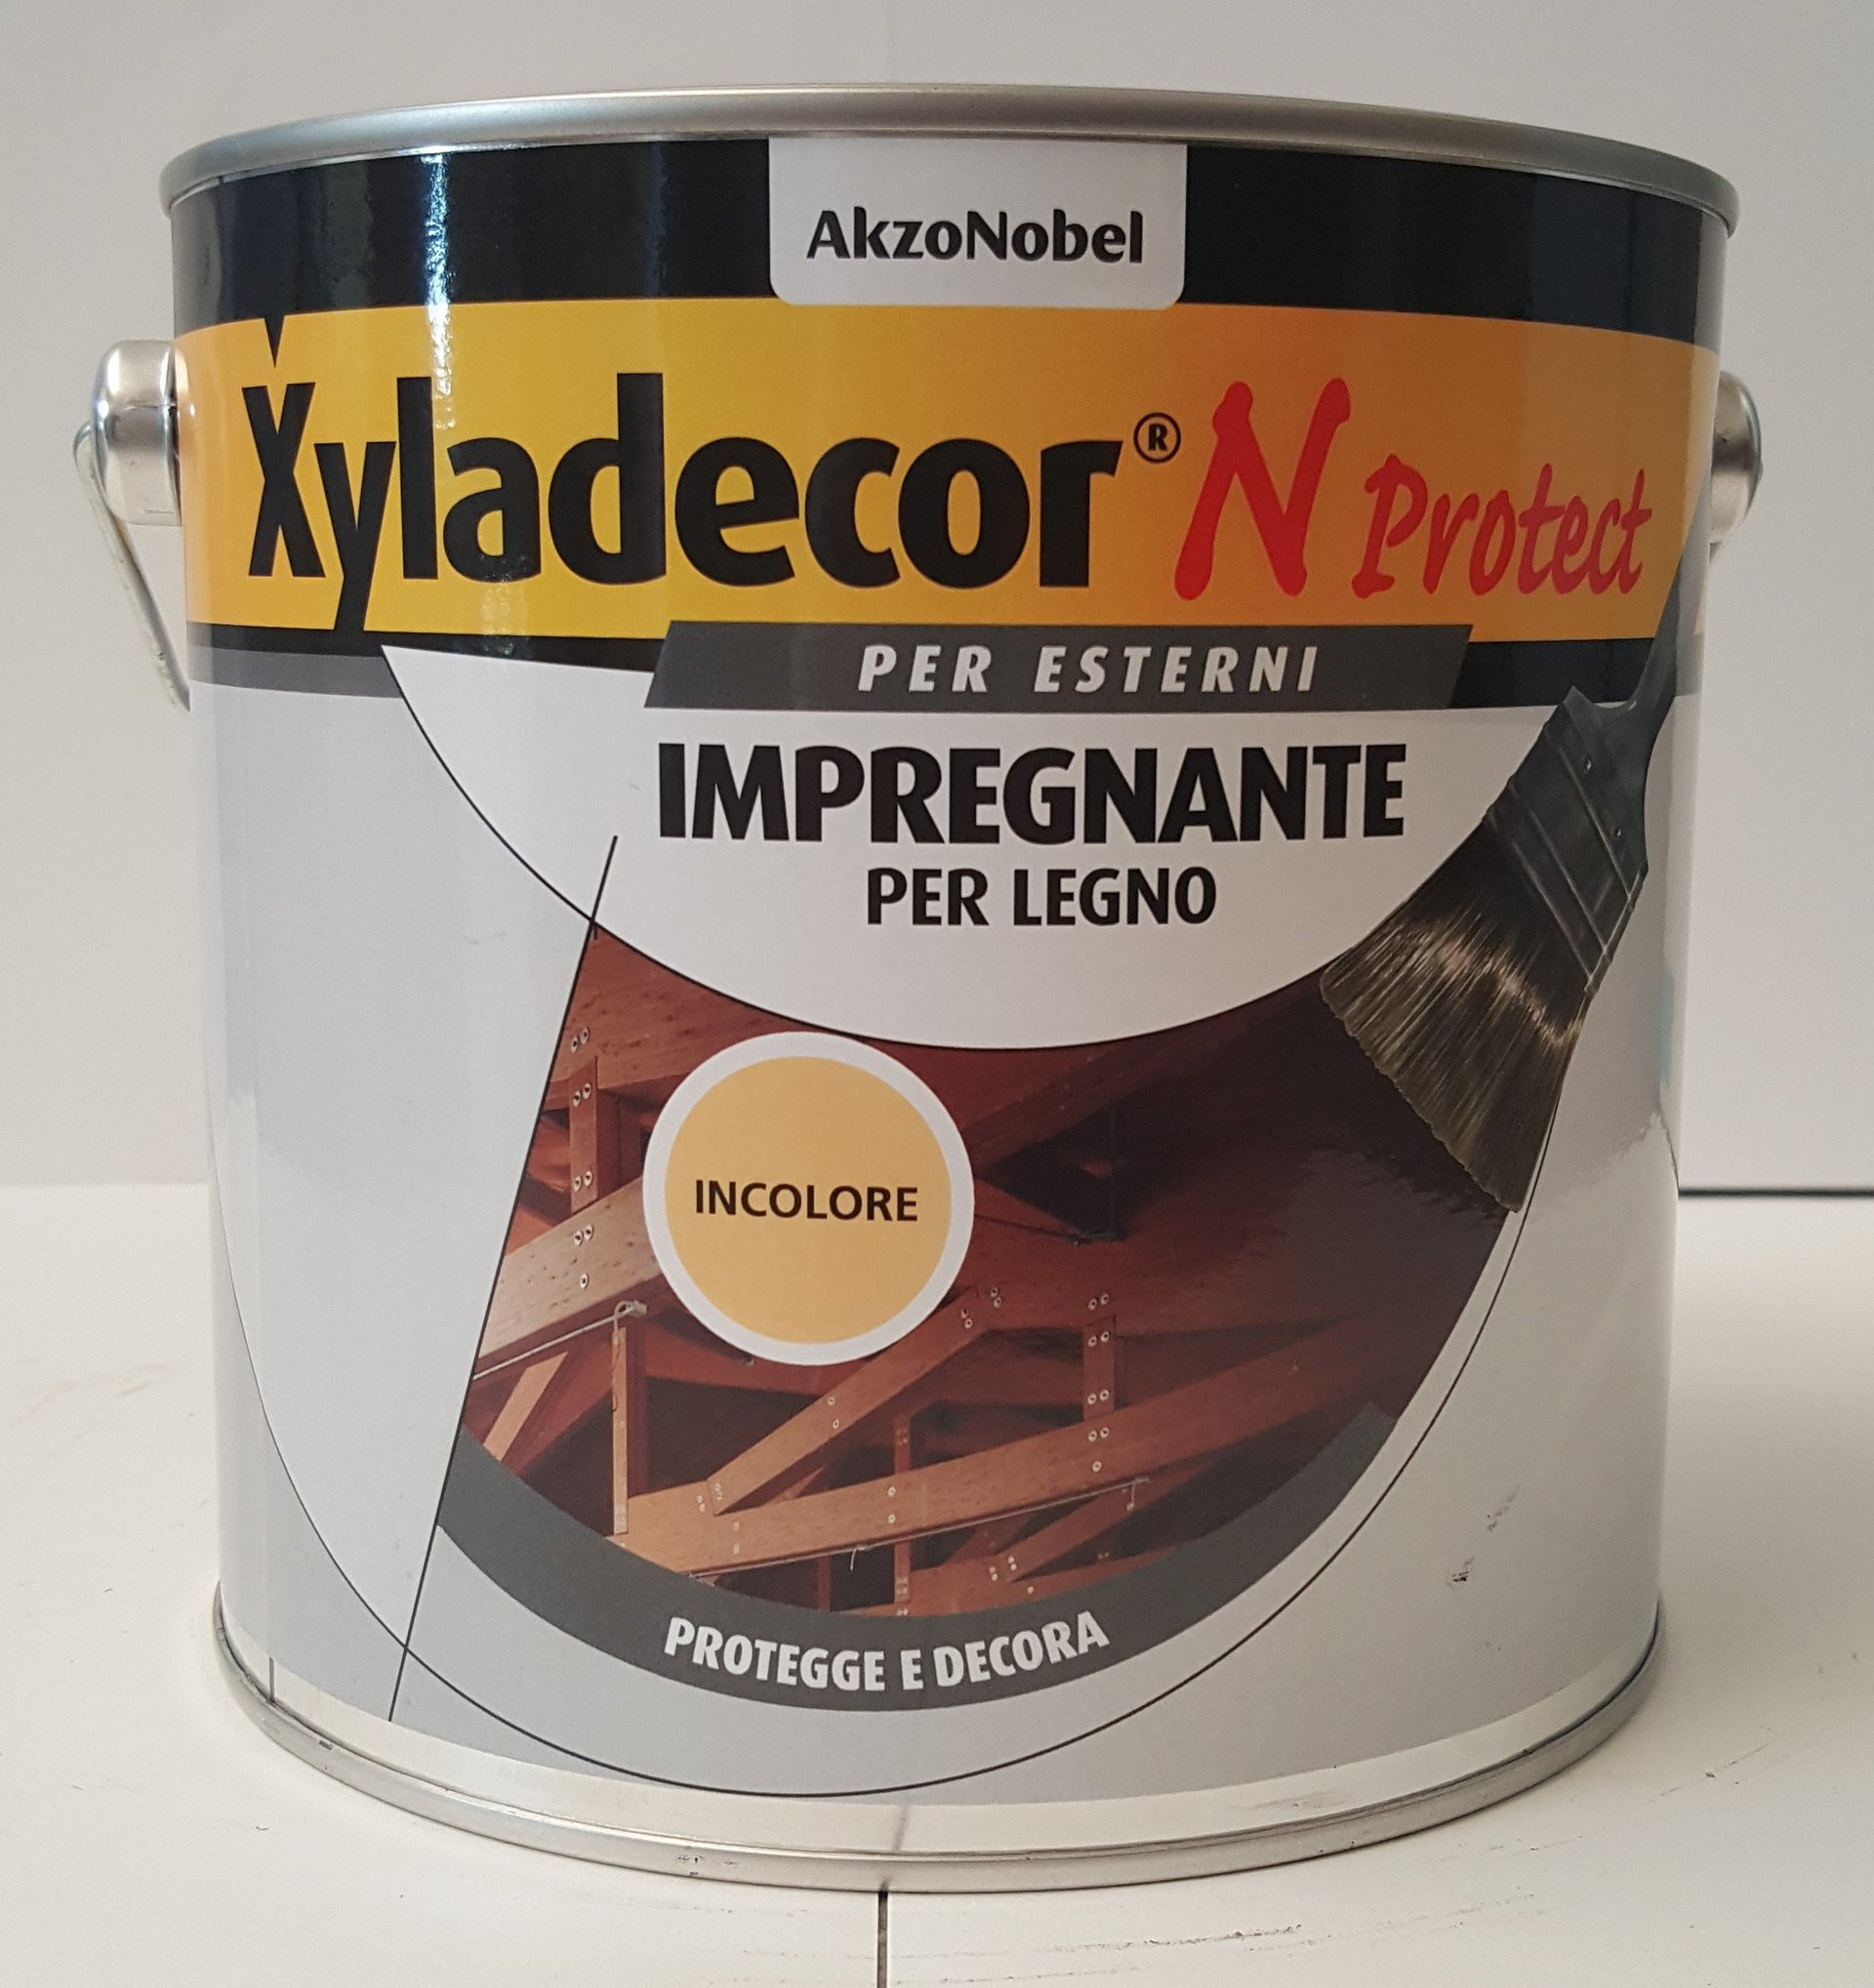 XYLADECOR IMPREGNANTE N PROTECT